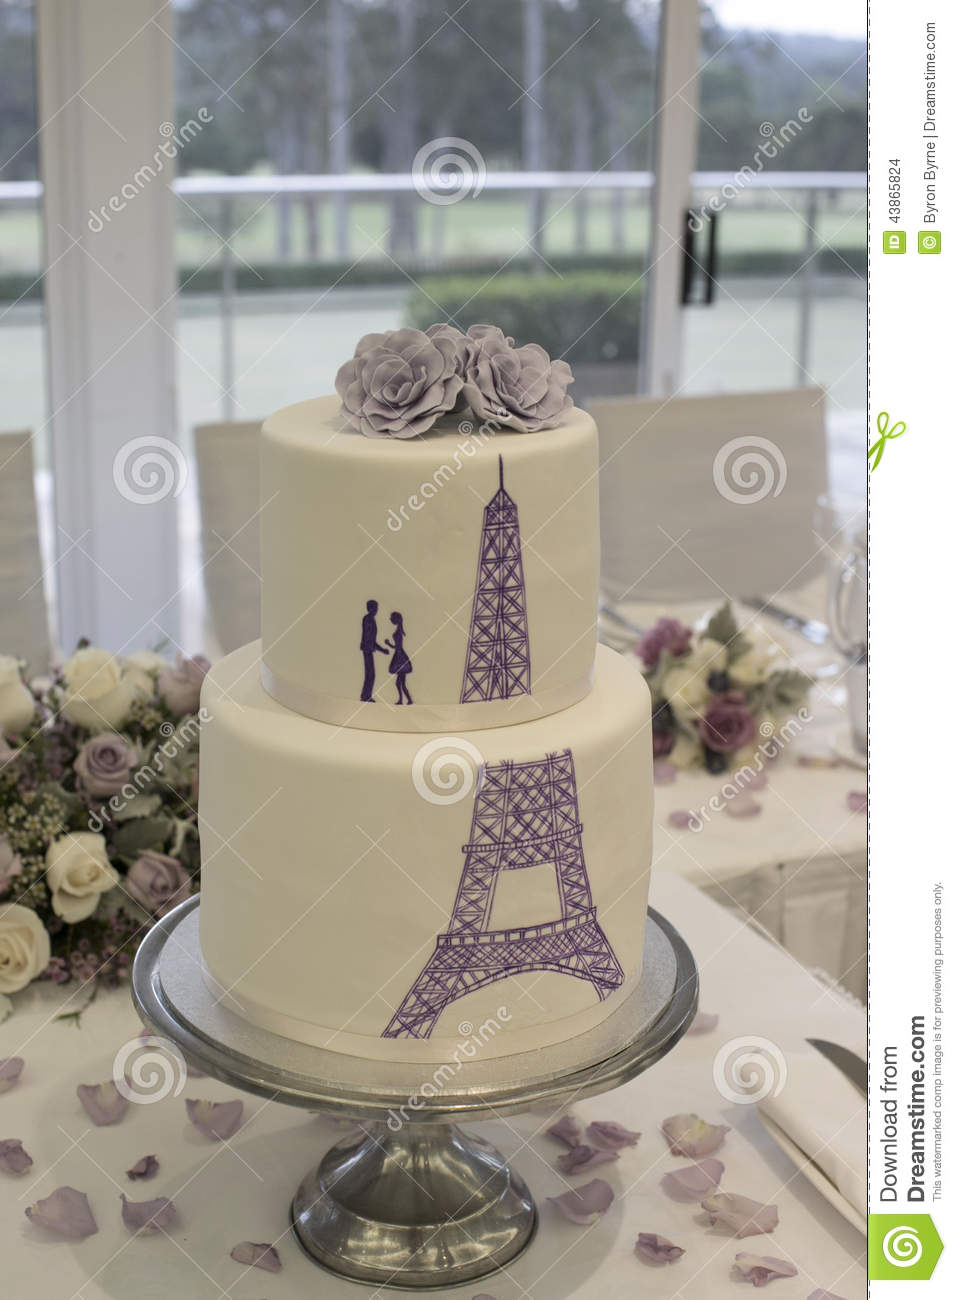 Wedding Cake With Silhouette Of A Couple And The Eiffel